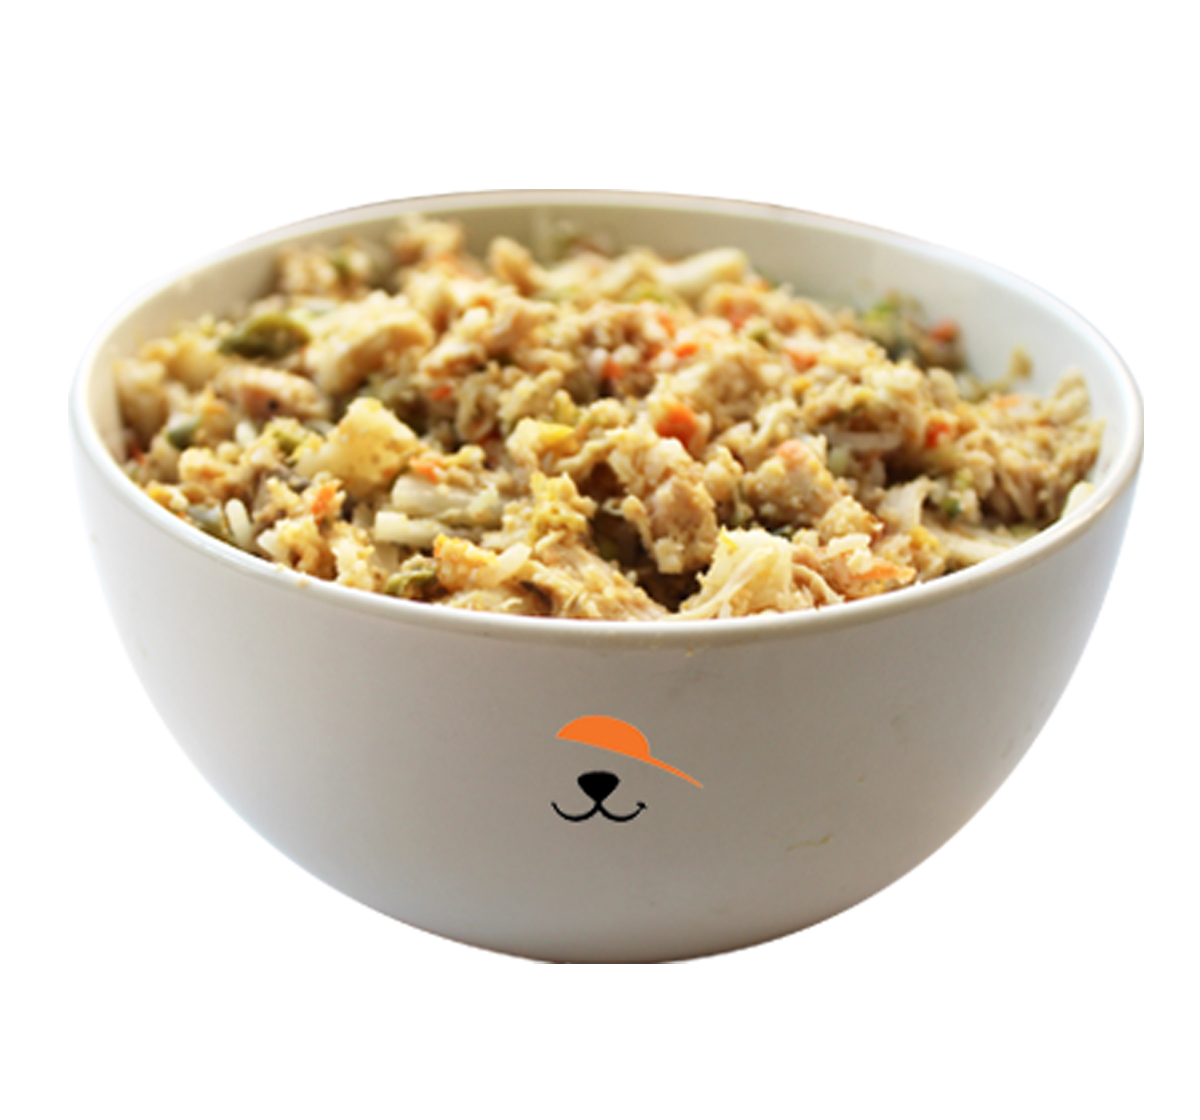 FurrMeals Juicy Chicken Pasta Home cooked Adult Dog Food - 1 kg